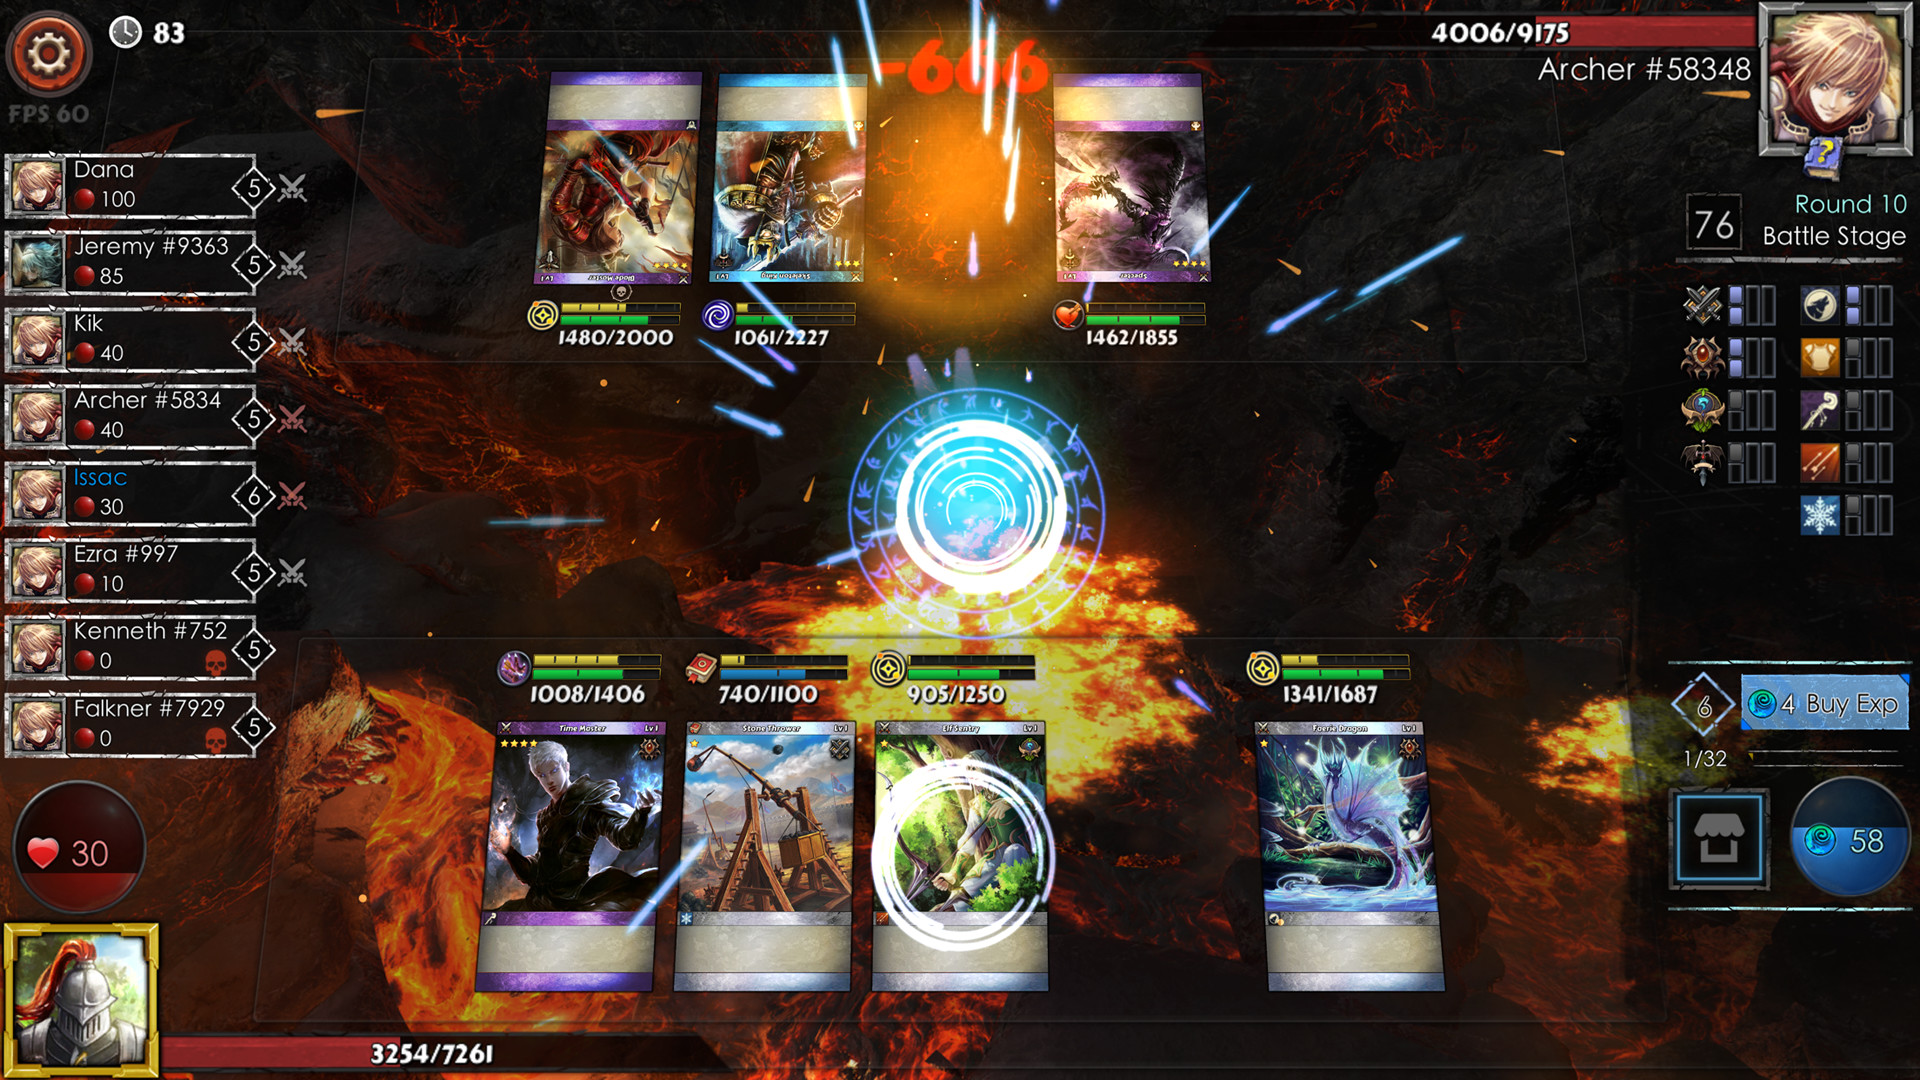 Epic Cards Battle 2 (TCG) on Steam